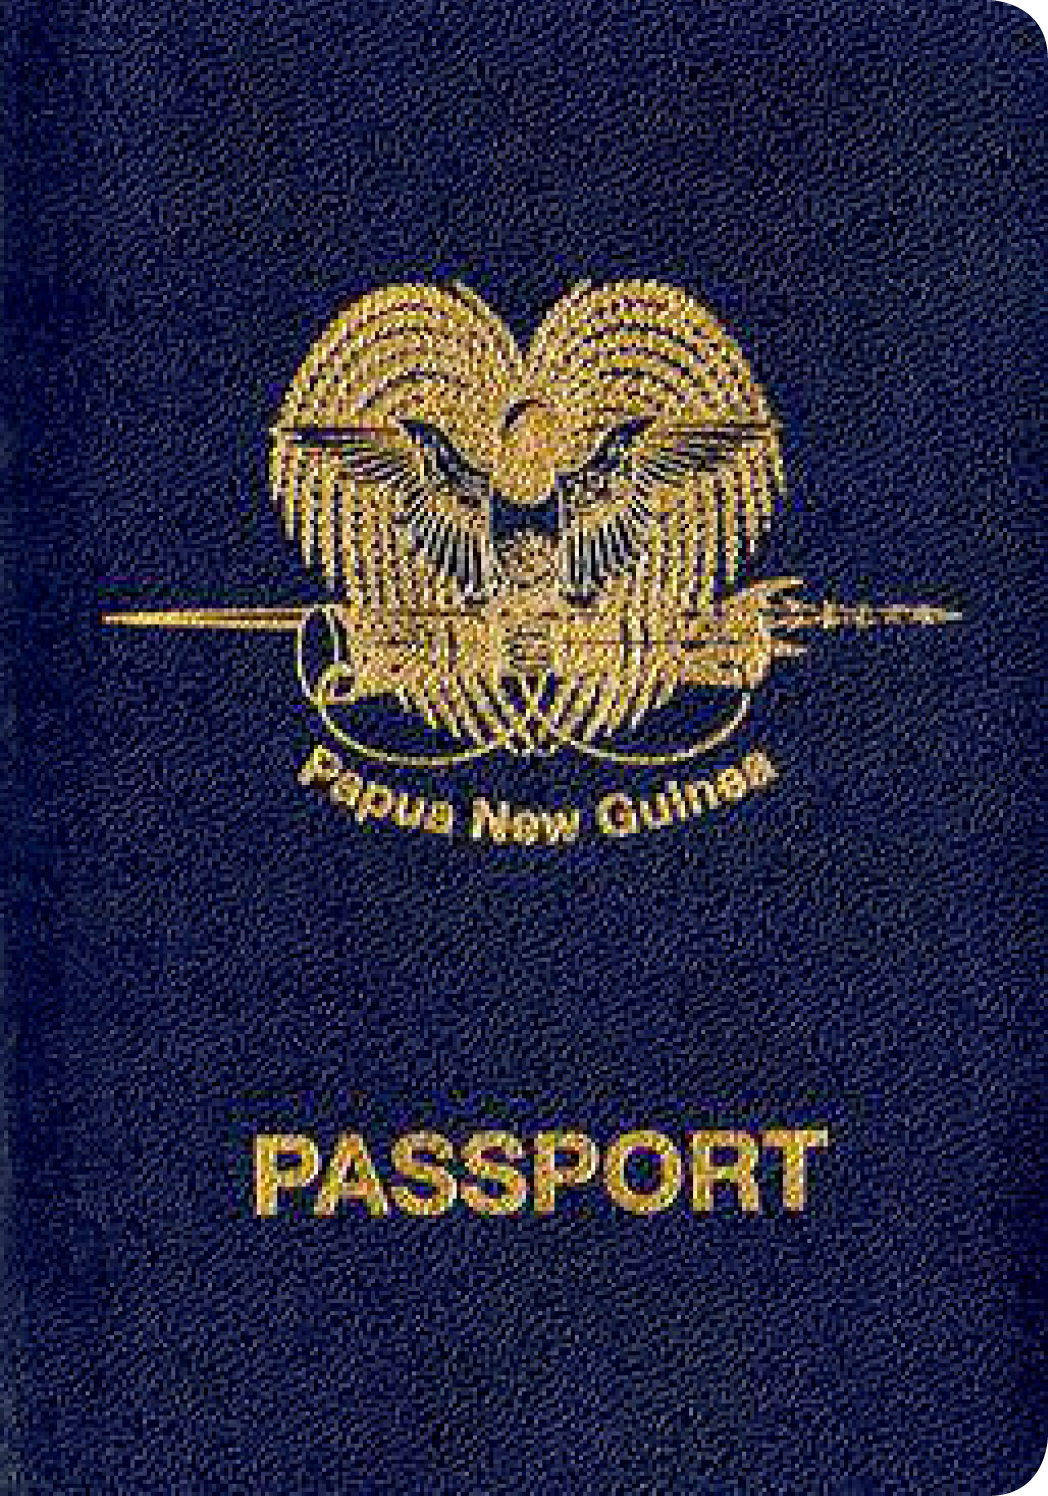 A regular or ordinary Papua New Guinea passport - Front side